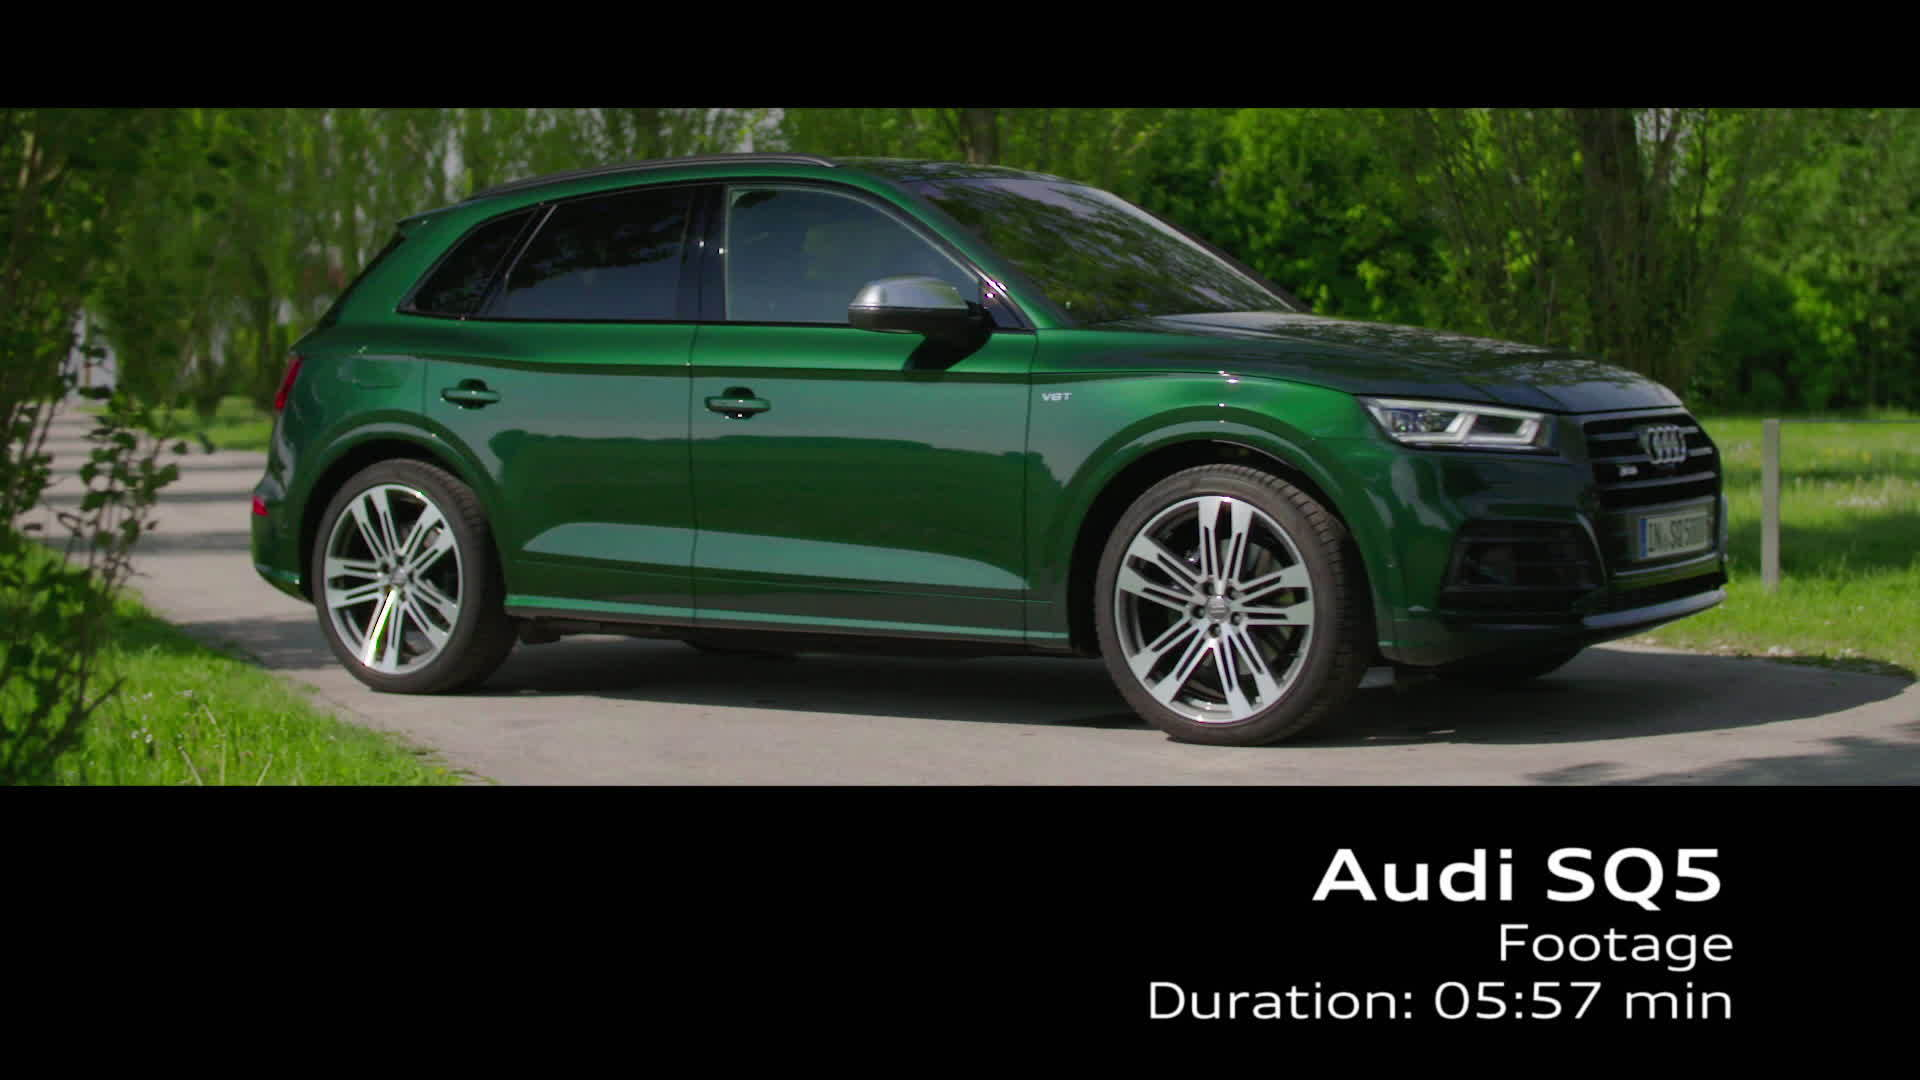 The Audi SQ5 - Footage TechDay